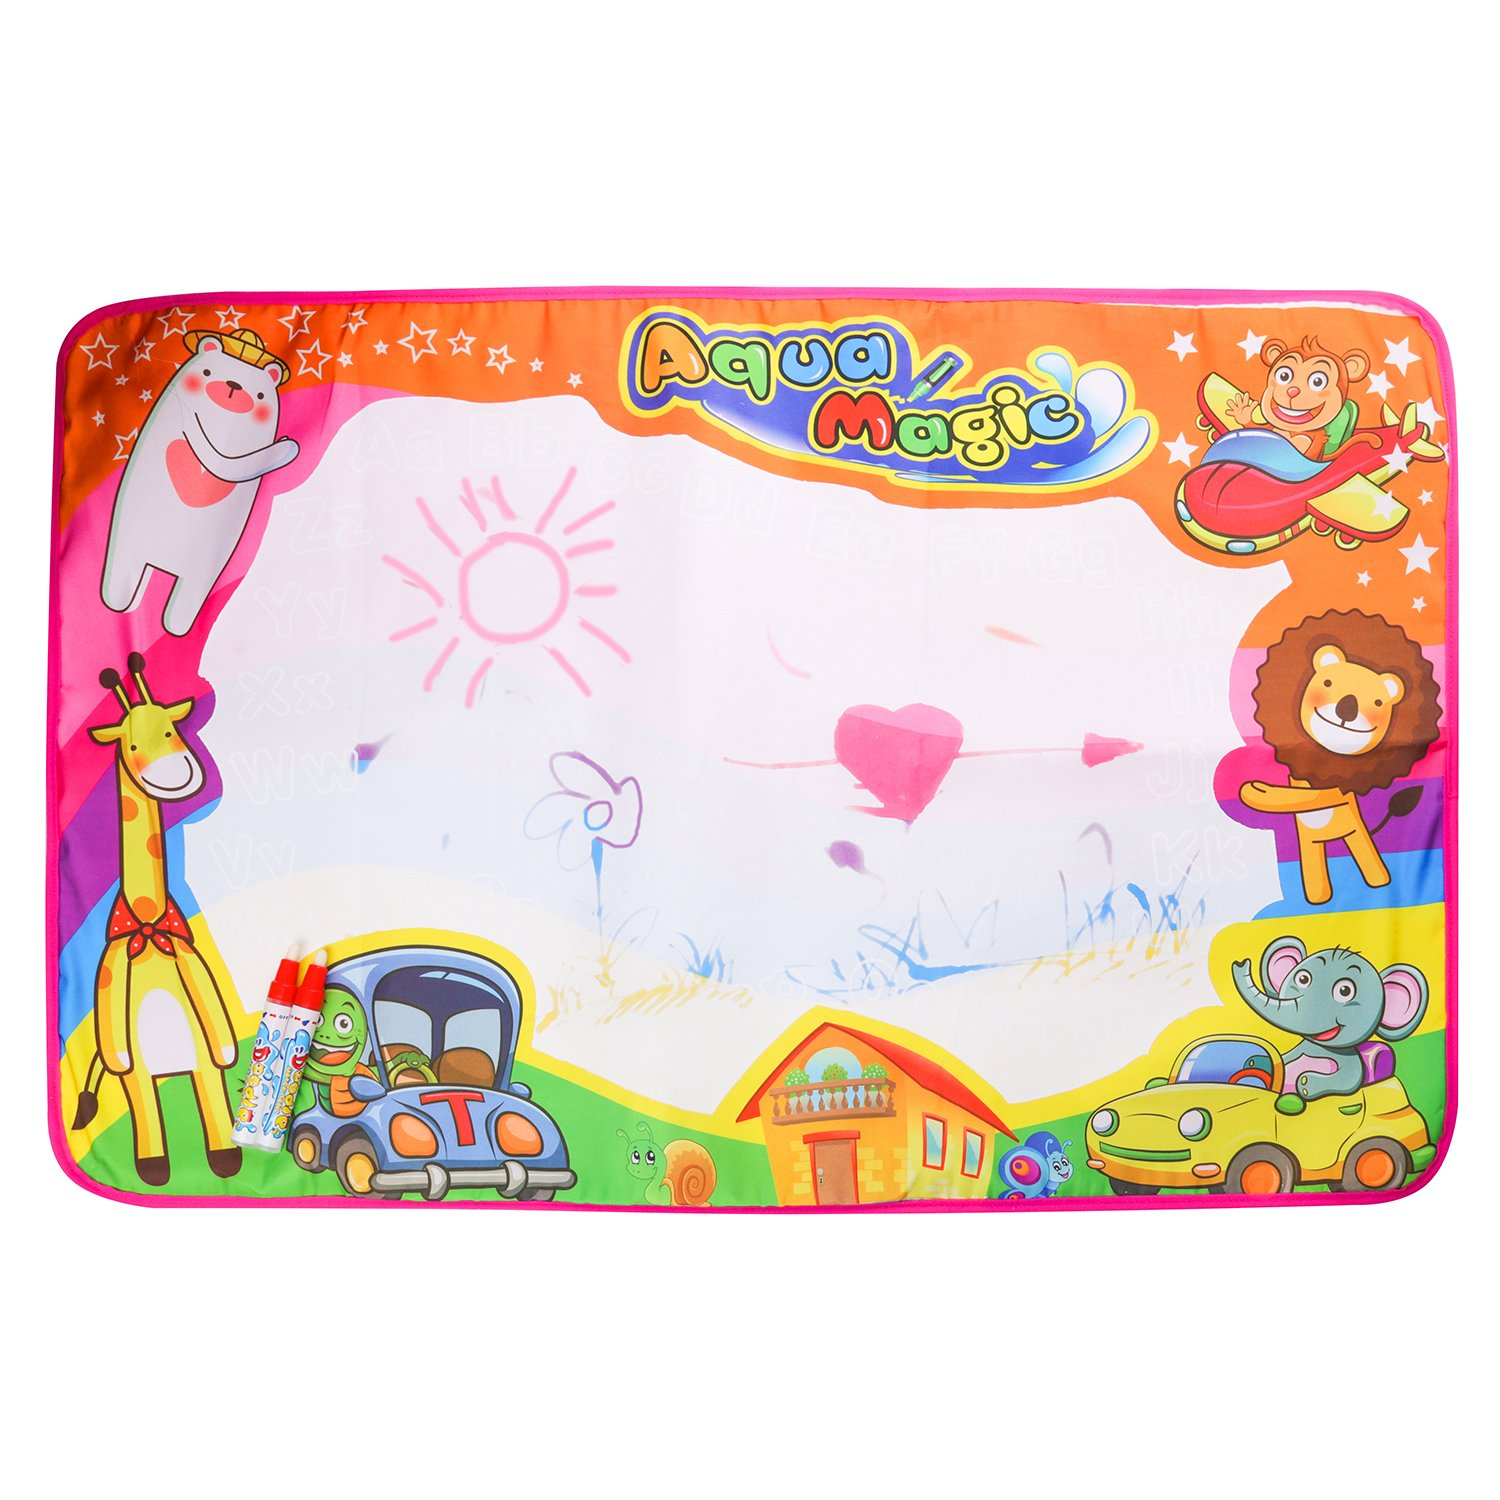 Water Drawing Doodle Mat, Large Magic Painting Travel Pad board Kids Educational Play Toys Learning Scribble Tools with 2 Magic Pens+1brush pen for Children Baby Toddler Boys Girls (33.86 x 22.05 In) Centtechi